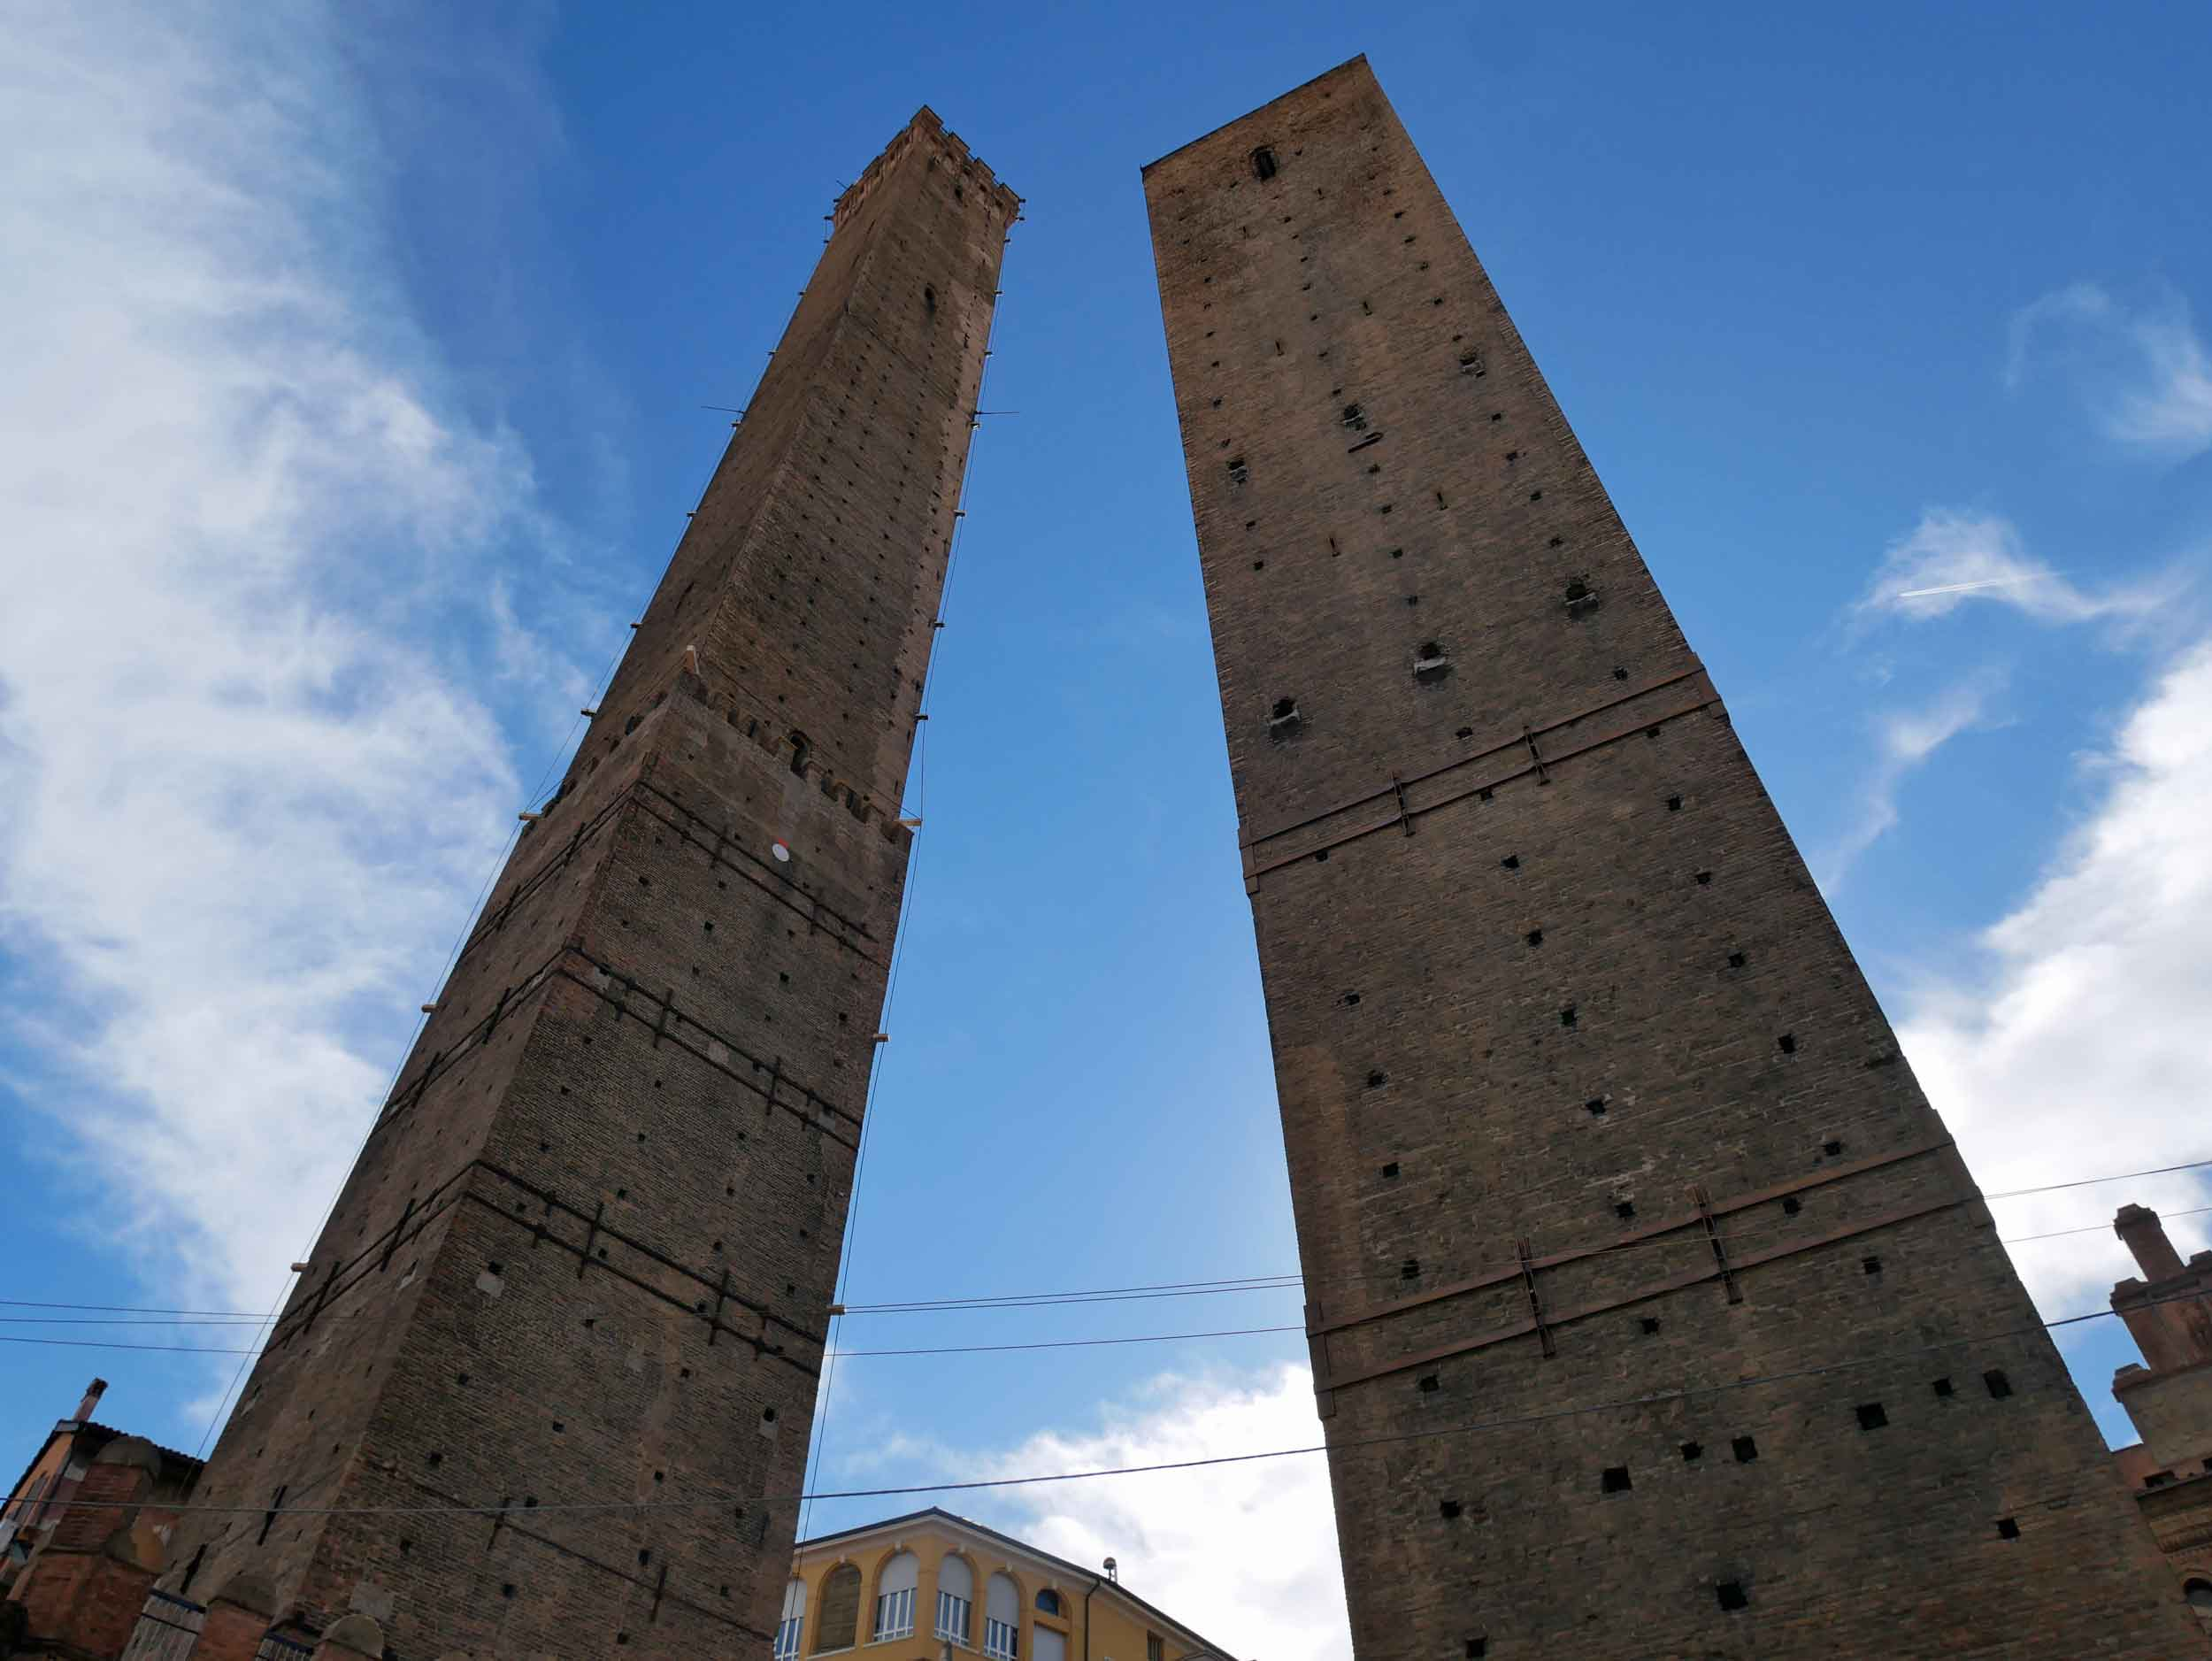 Bologna was once home to many towers used by wealthy families for defense, and these are two famous leftovers, one with a distinct lean.